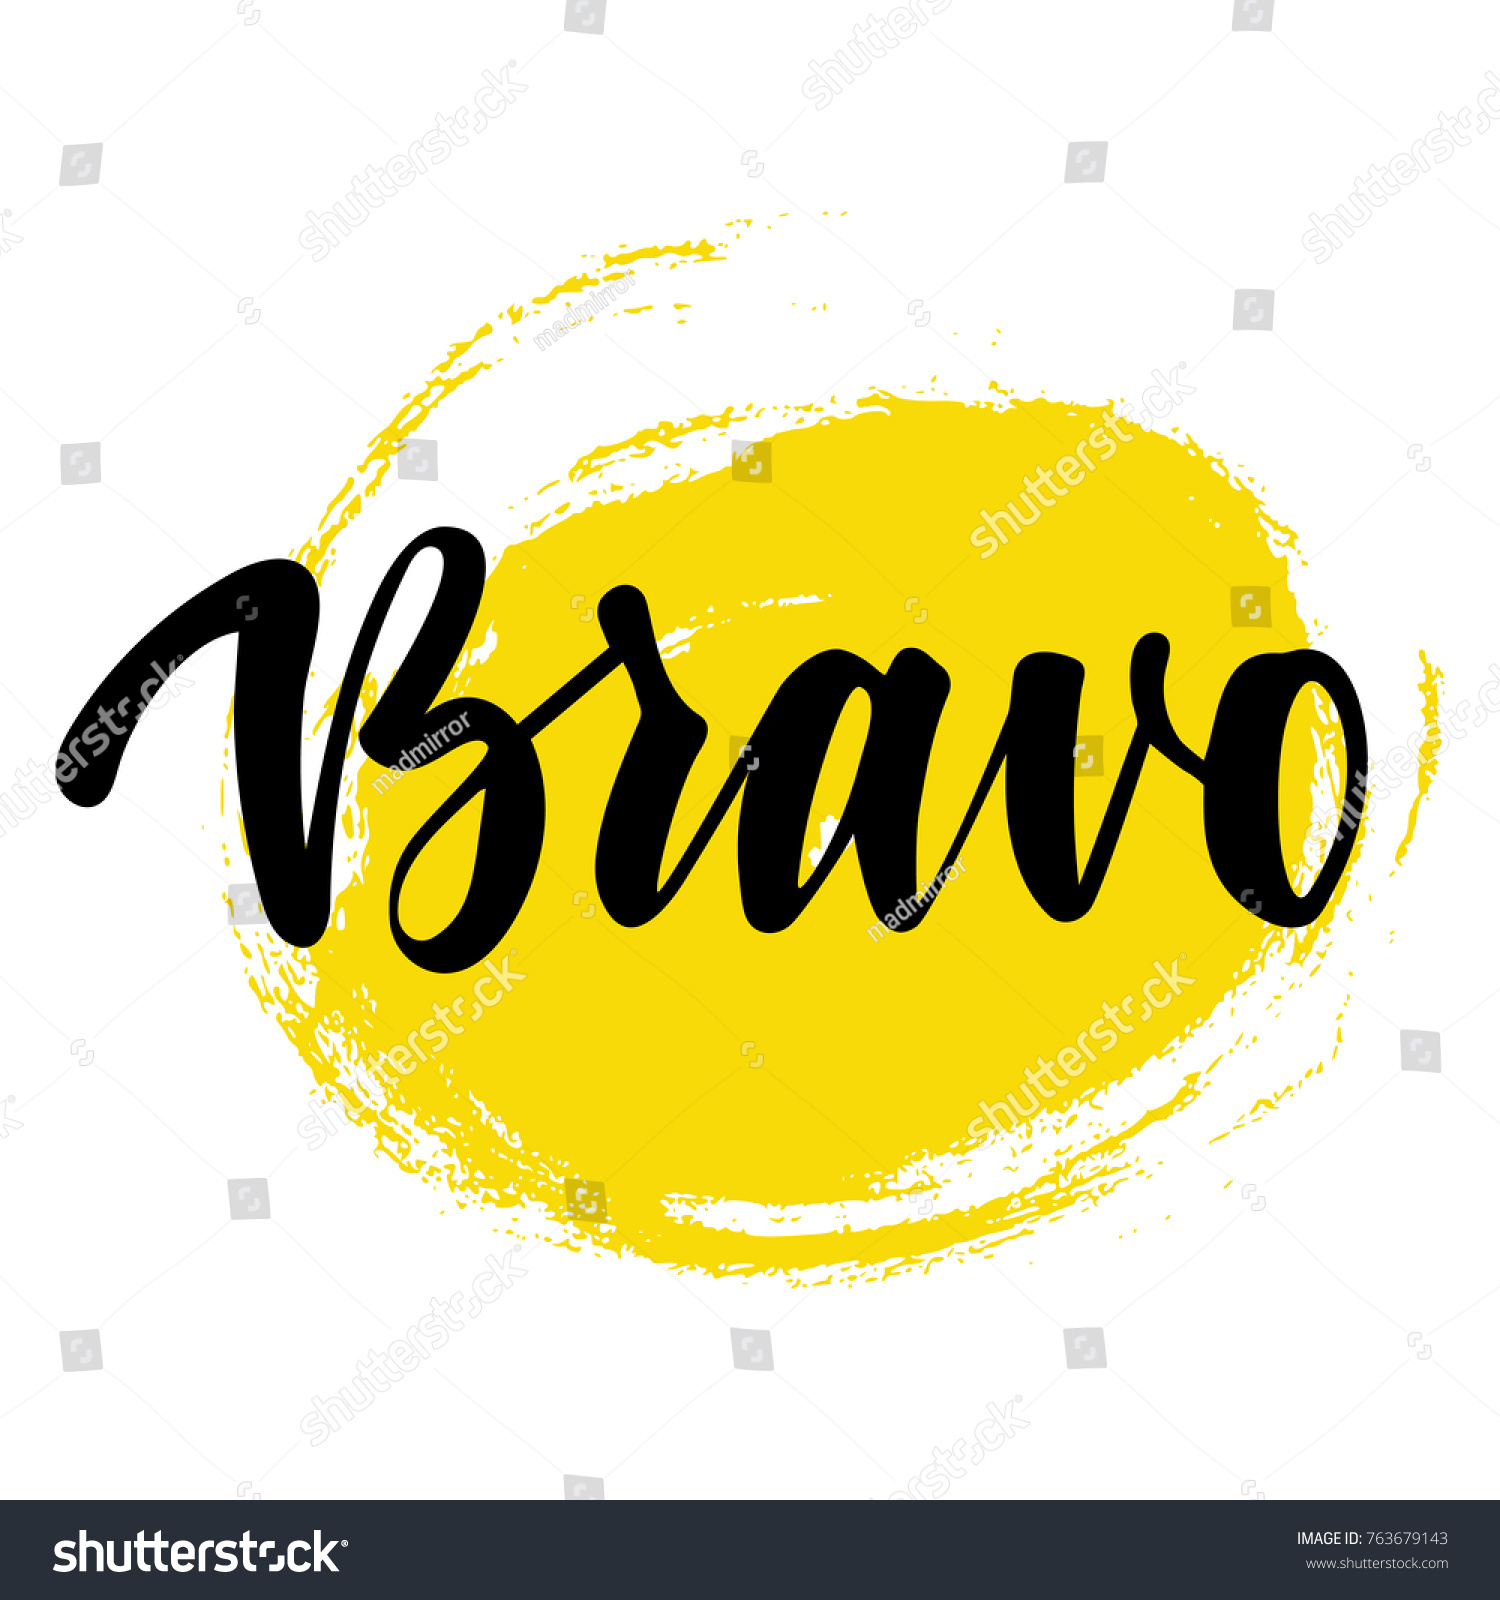 Bravo Greeting Congratulation Card Phrase Successful Stock Vector